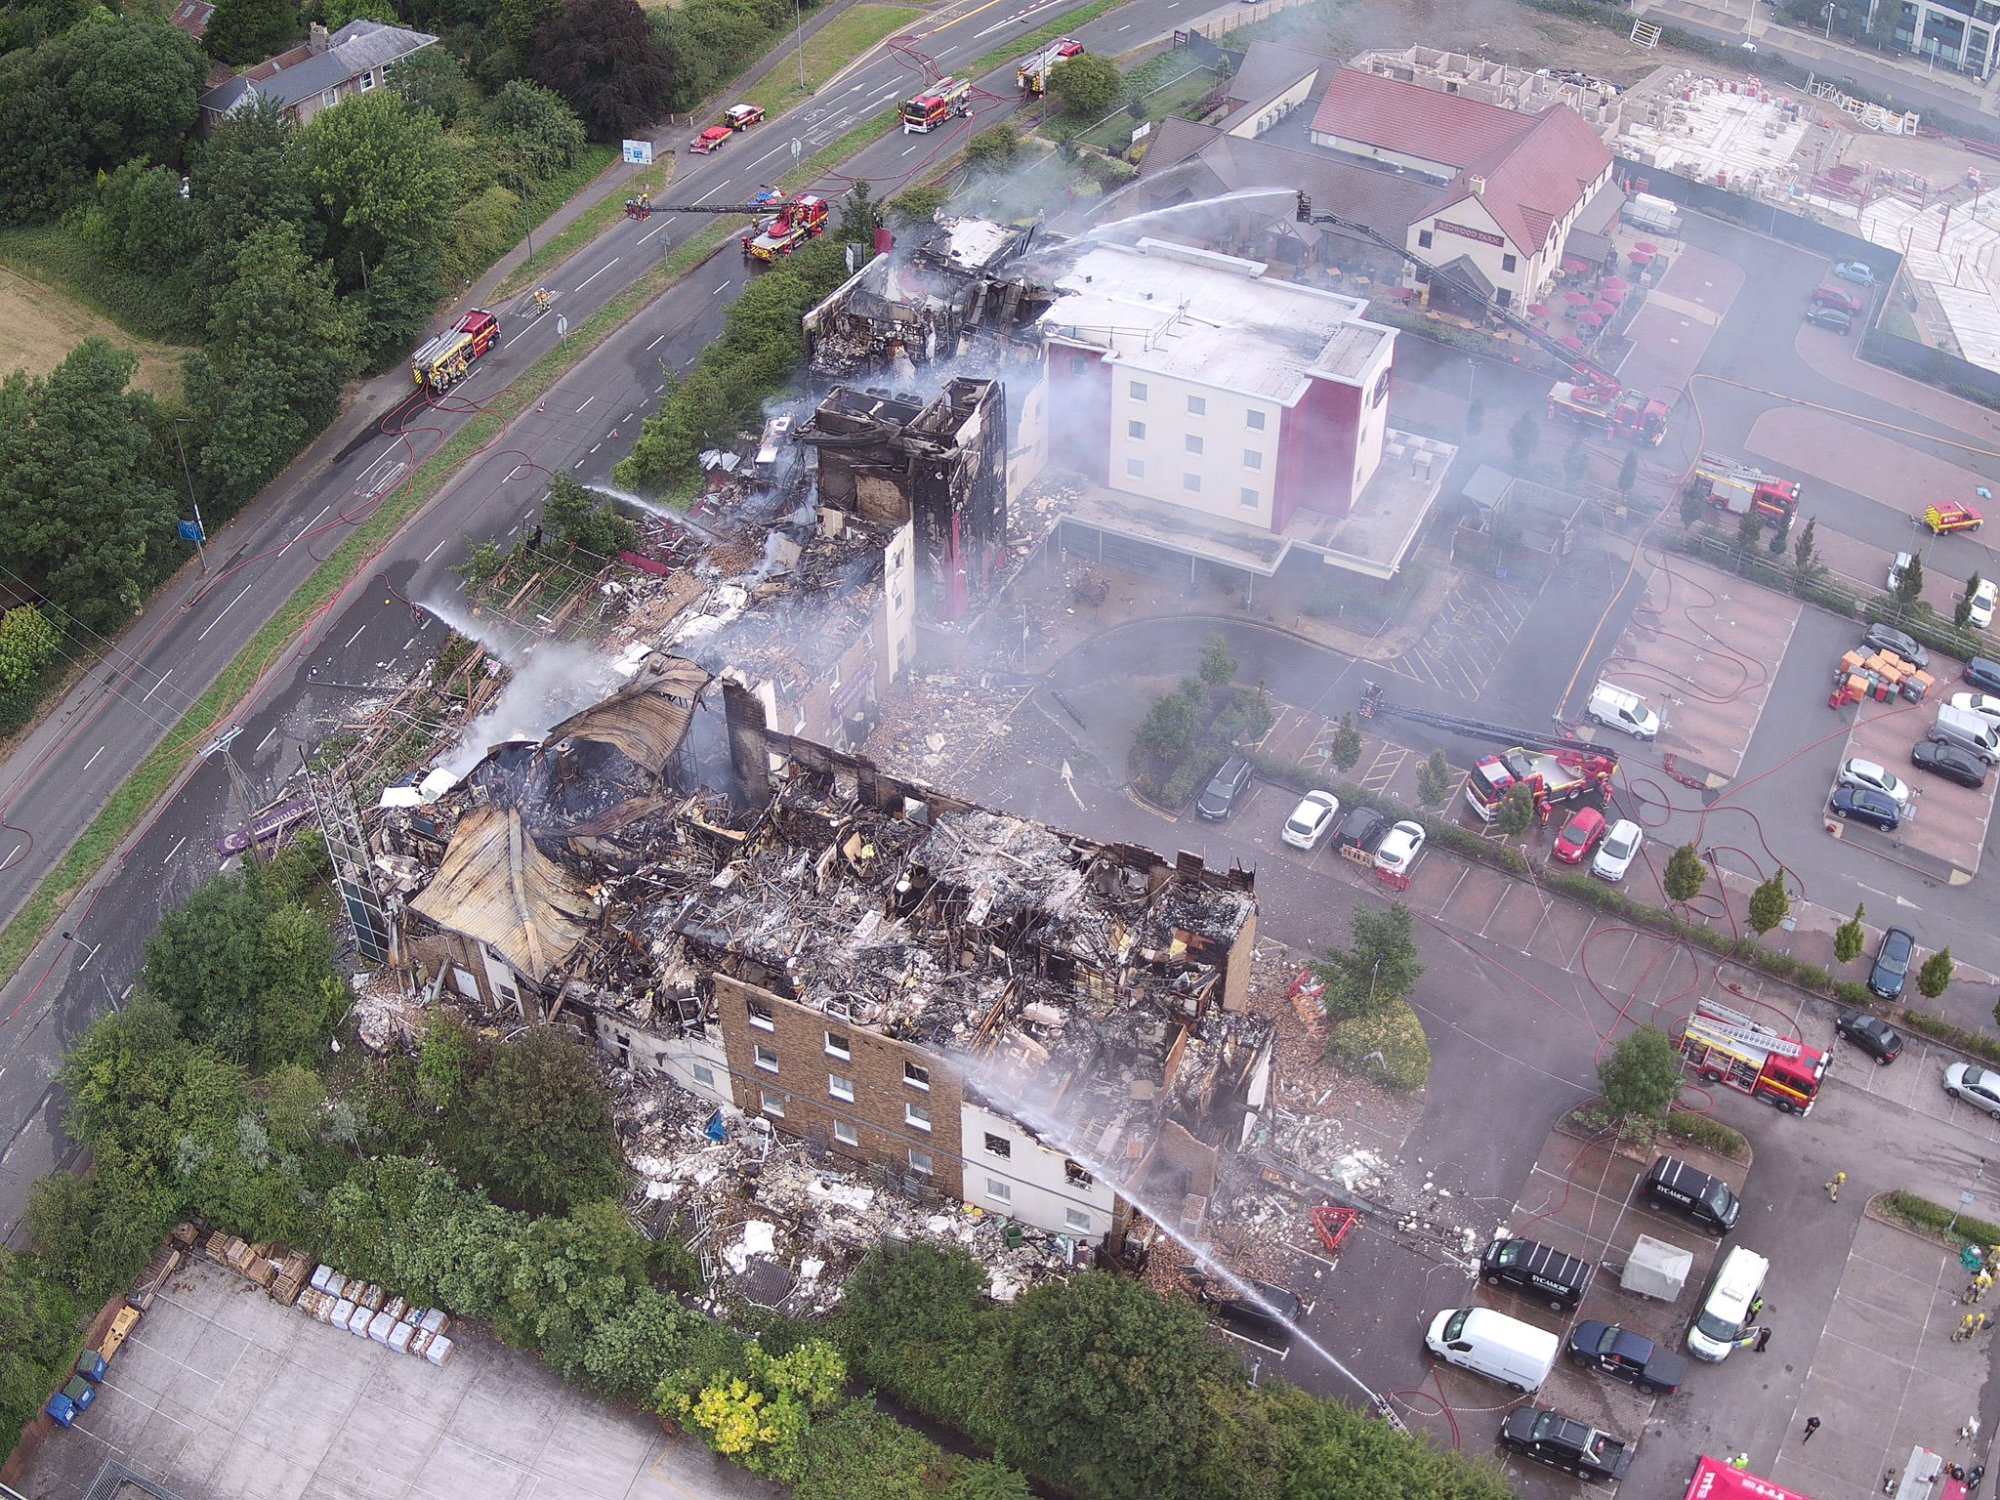 Premier Inn Bristol Fire - from drone